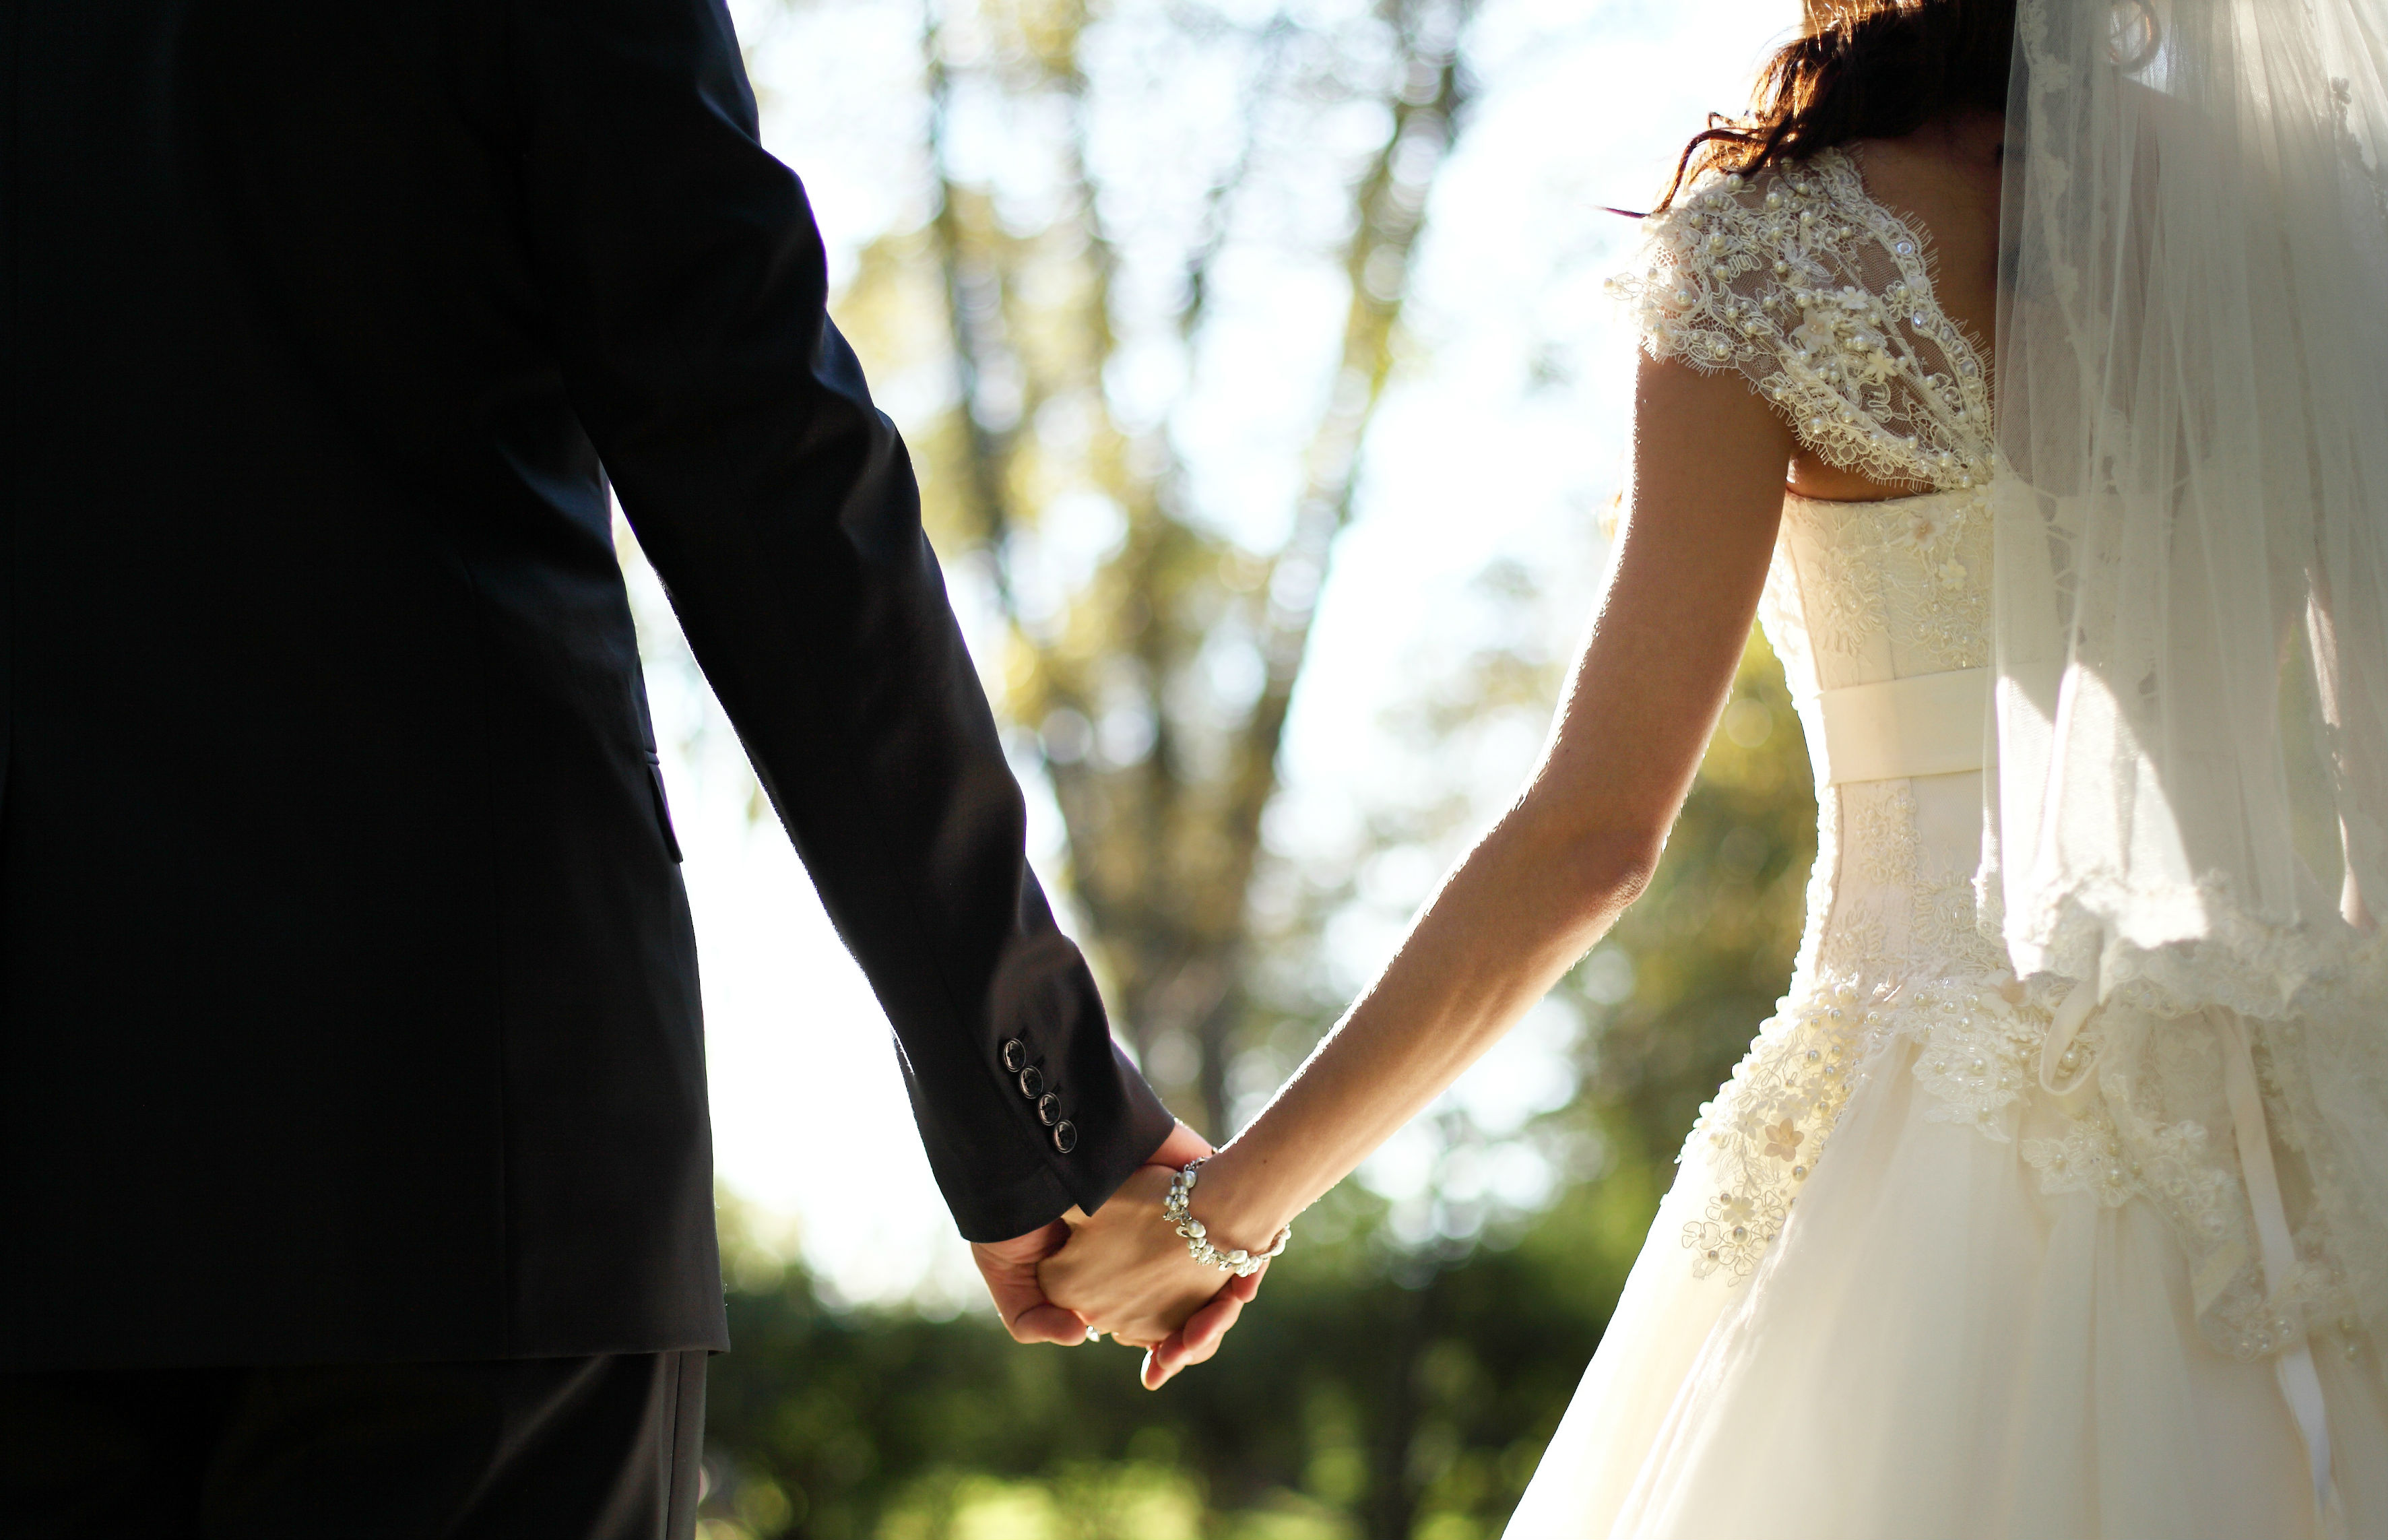 Getting married can reduce your tax bill (image: Shutterstock)